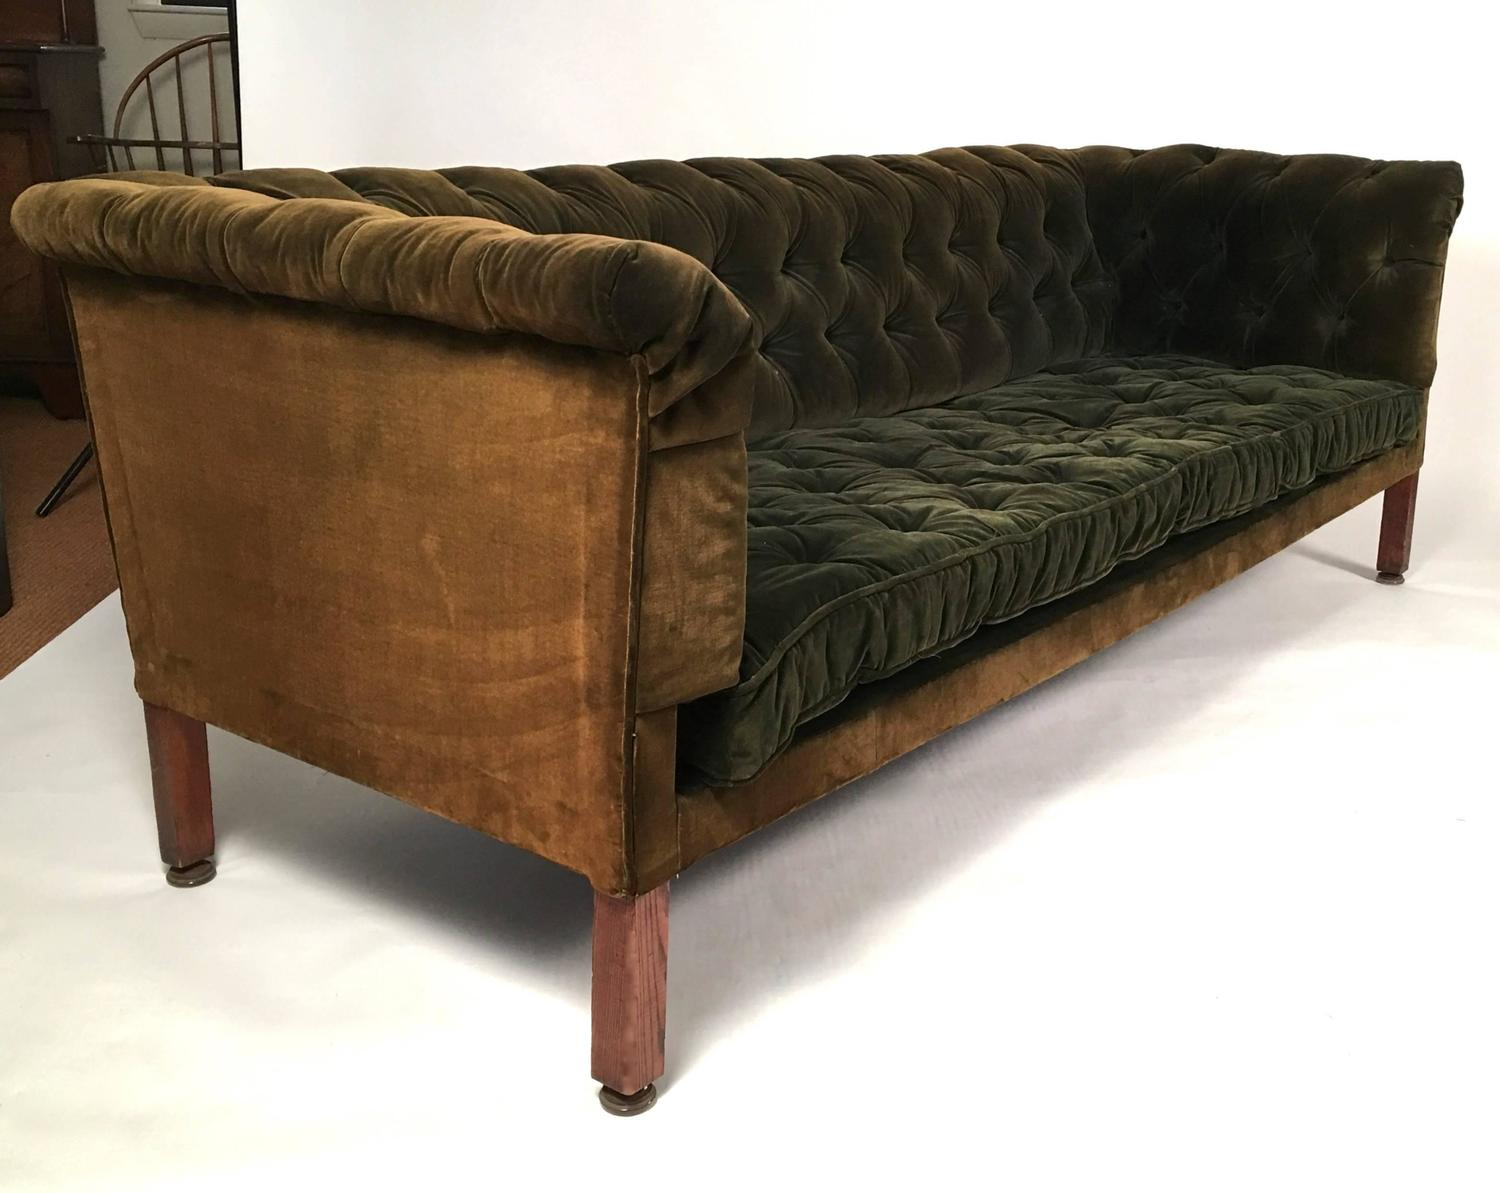 green velvet tufted chair desk design 19th century chesterfield sofa at 1stdibs